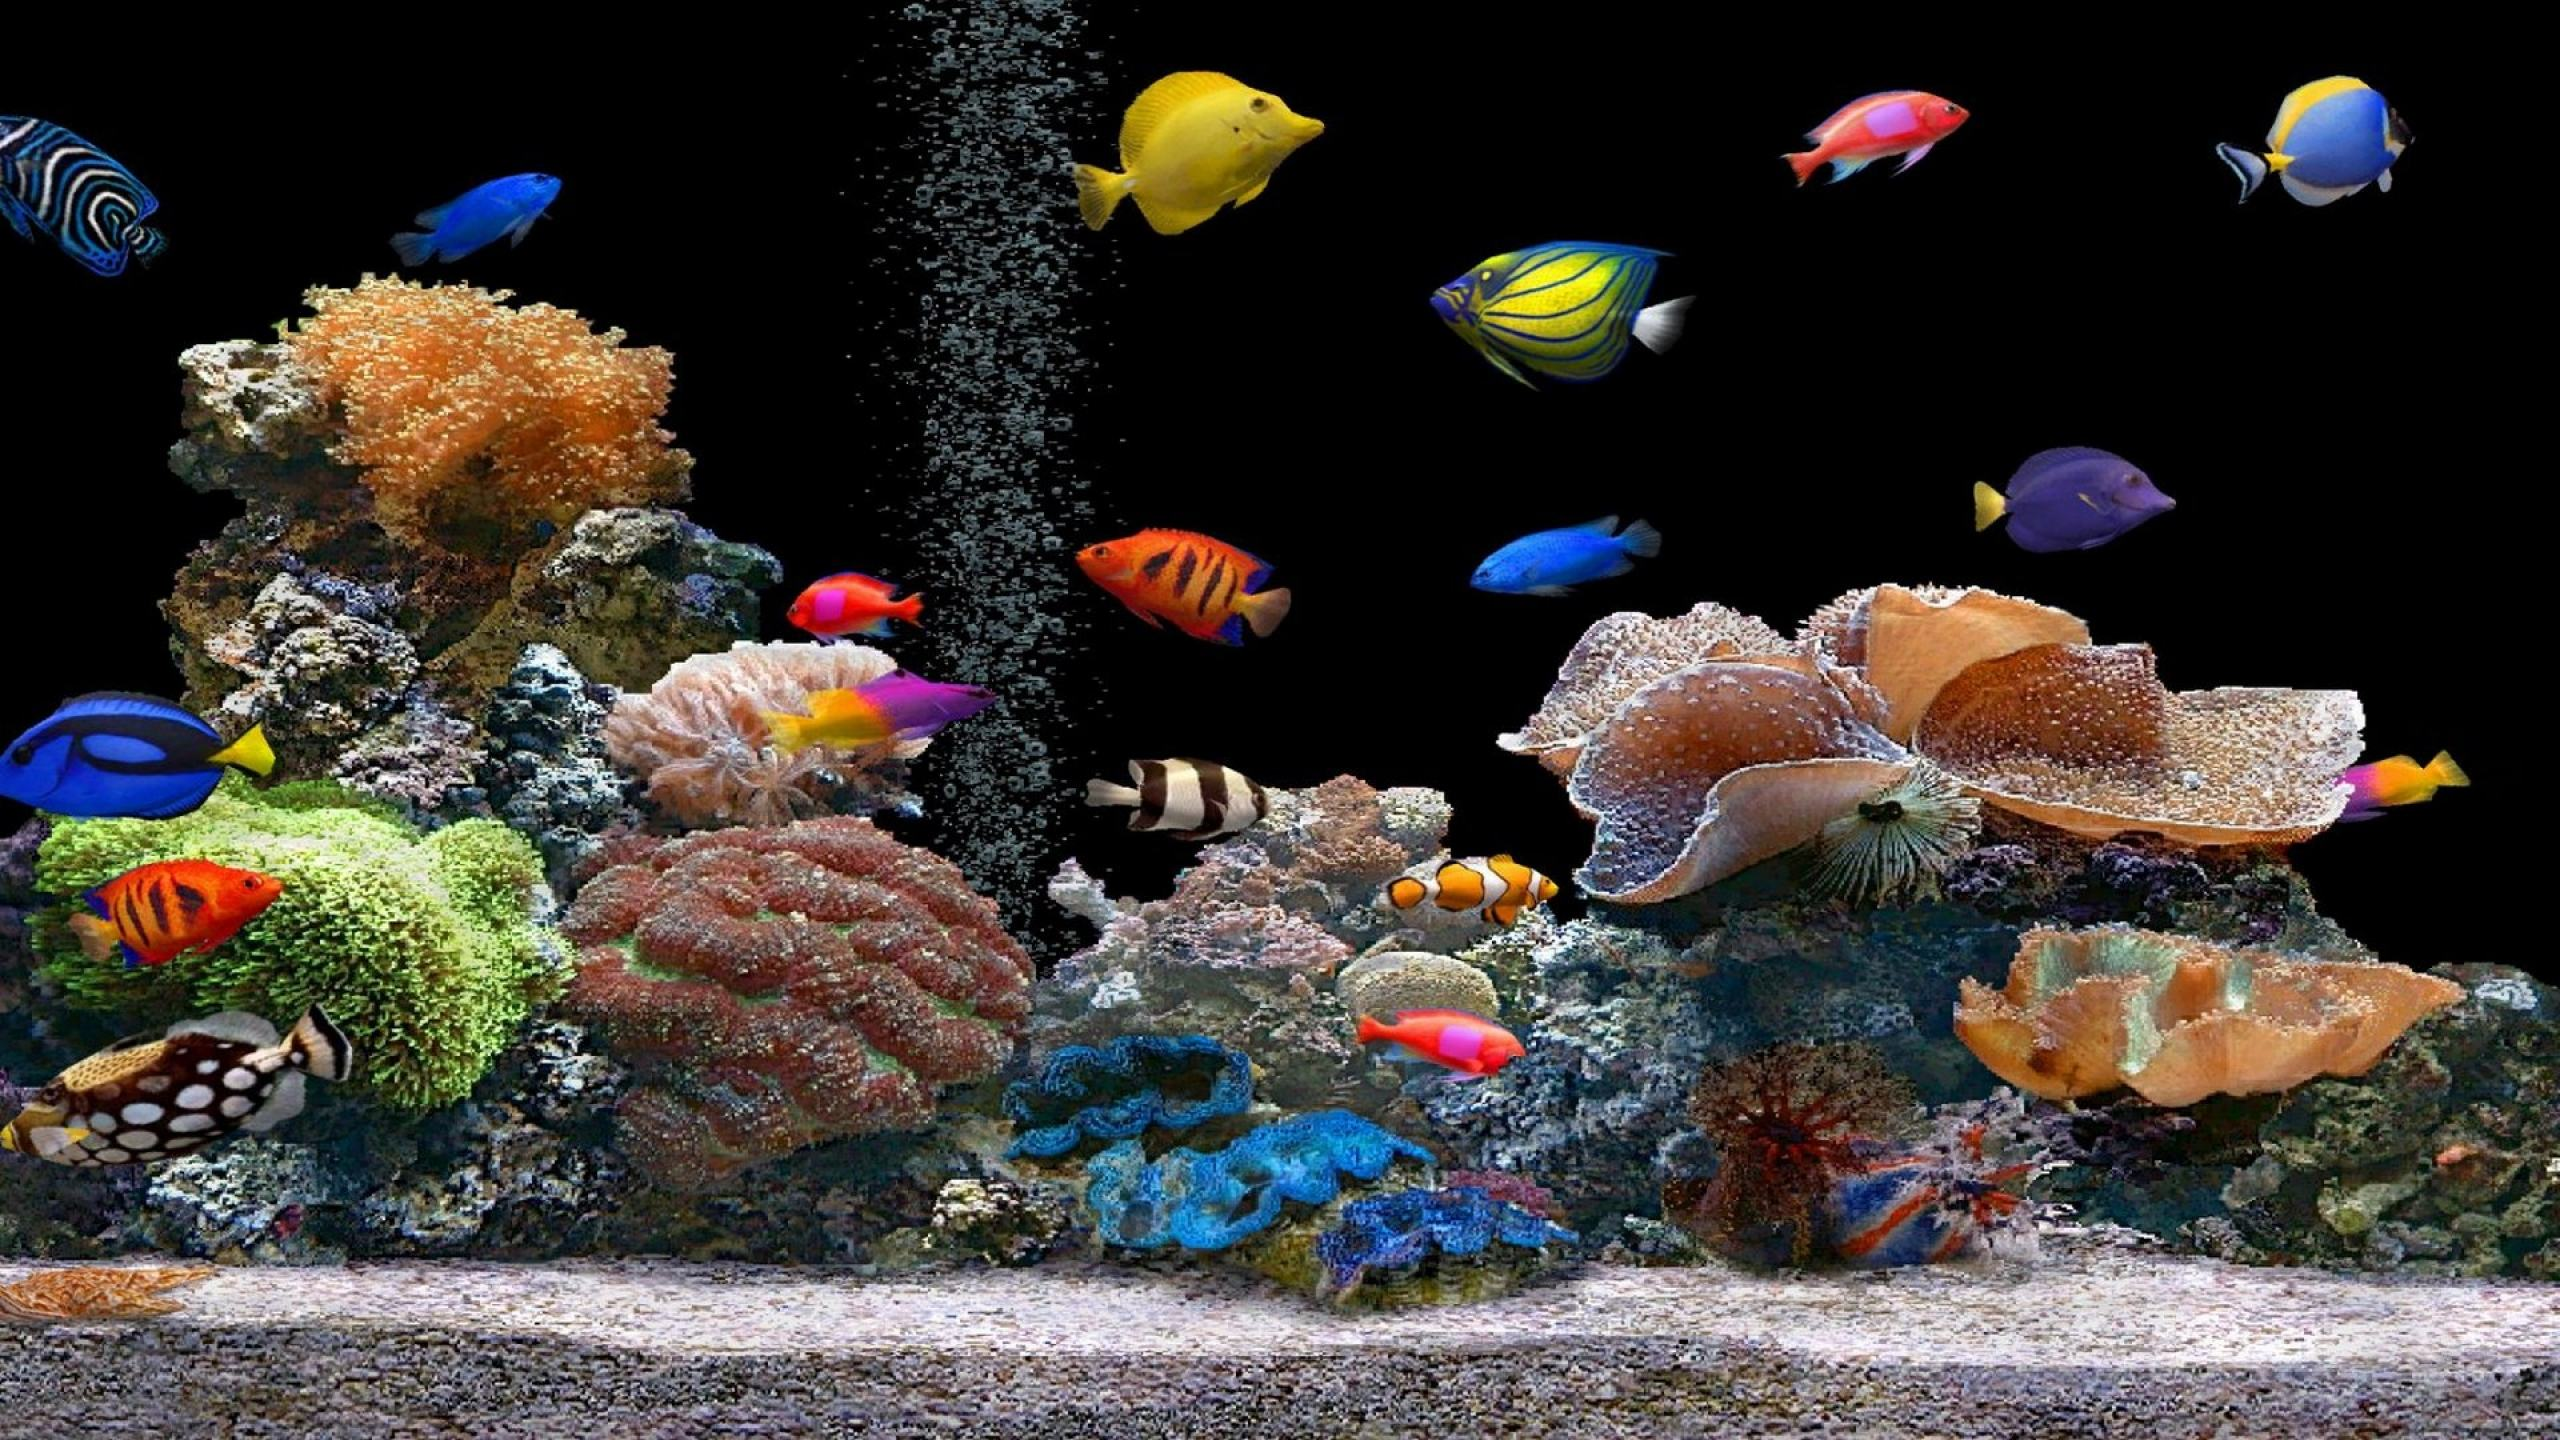 Wallpapers Aquarium Many Colorful Fish Hd Mobile 2560x1440 2560x1440 2560x1440